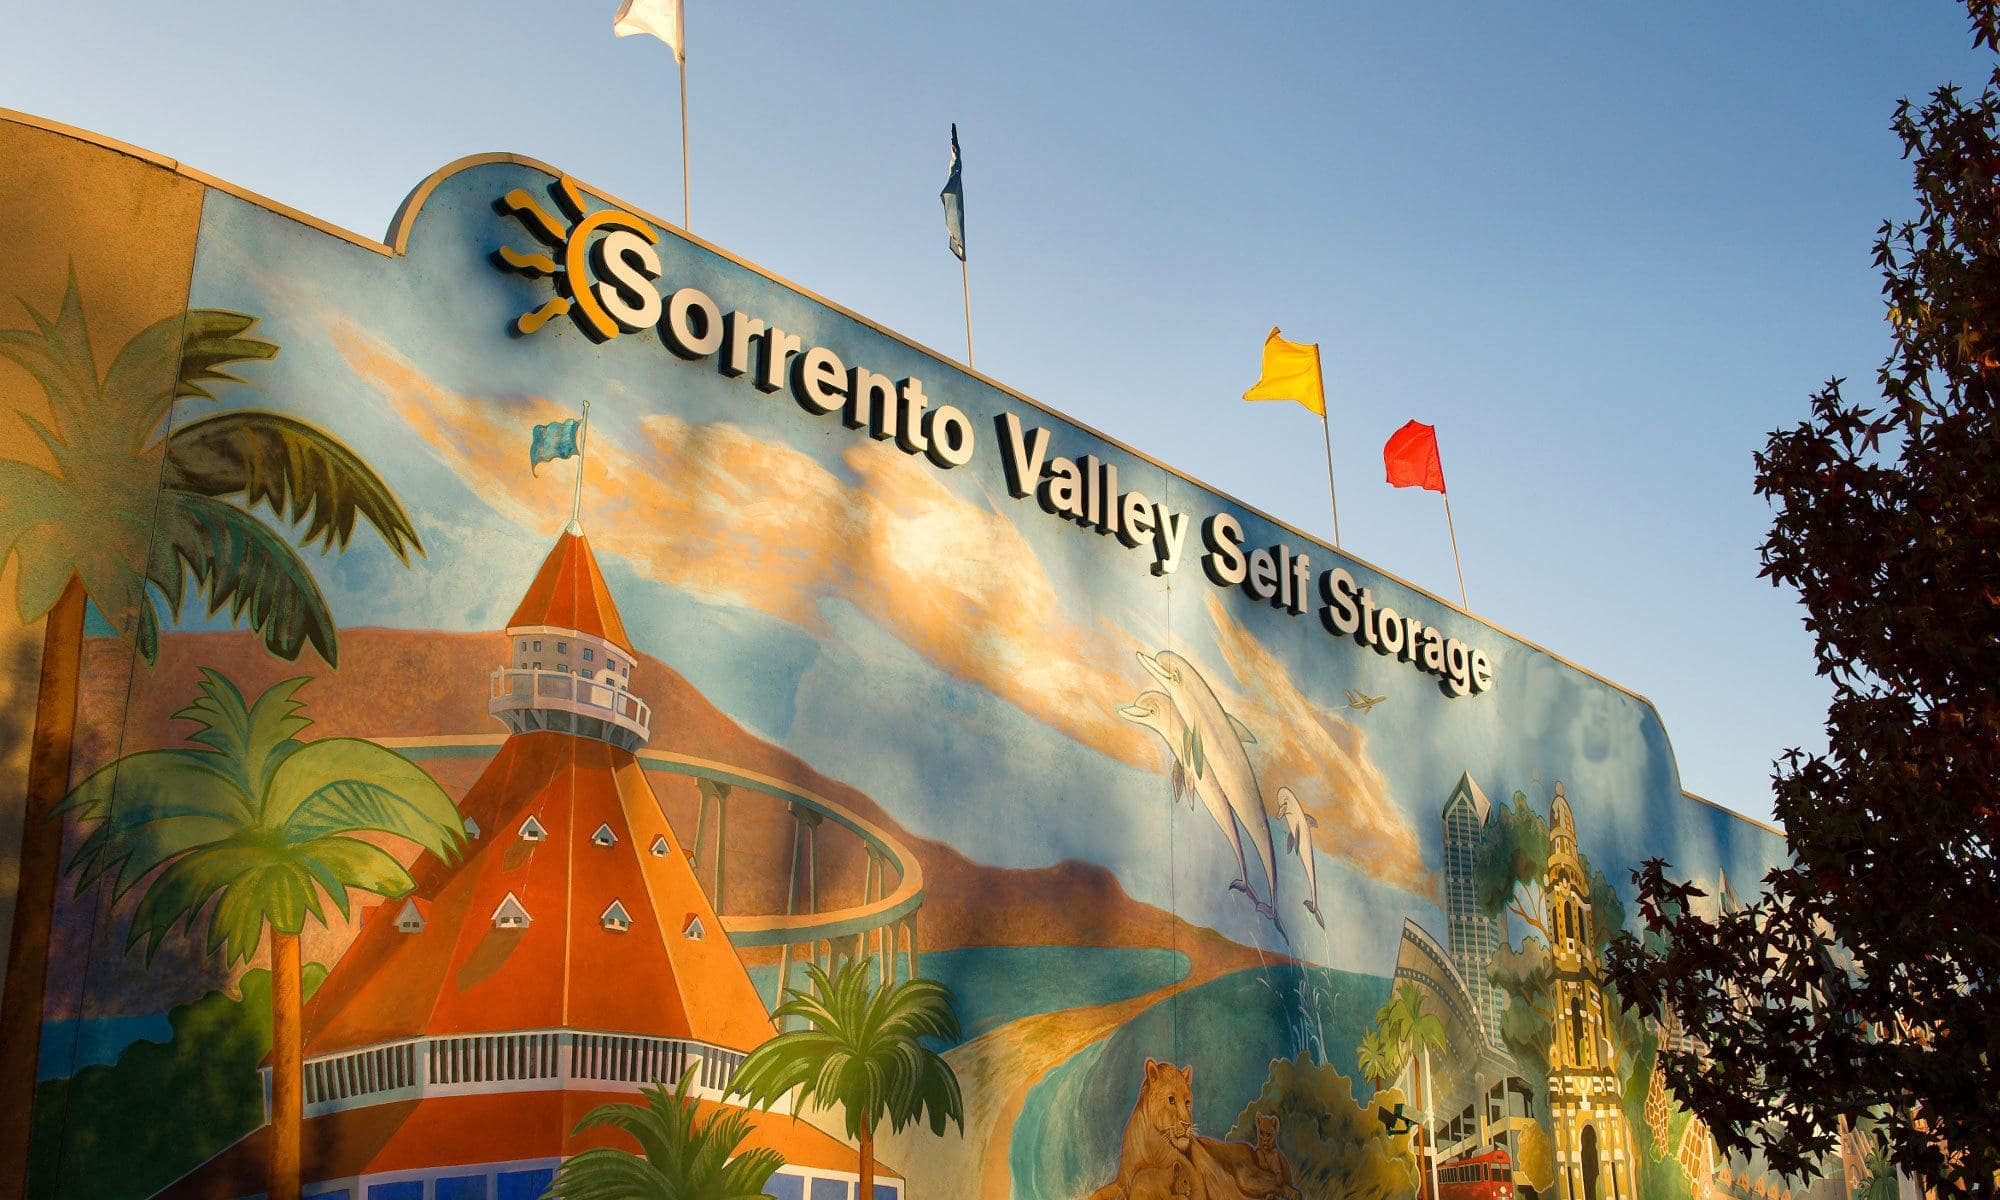 Visit us at Sorrento Valley Self Storage for the best self storage in San Diego.